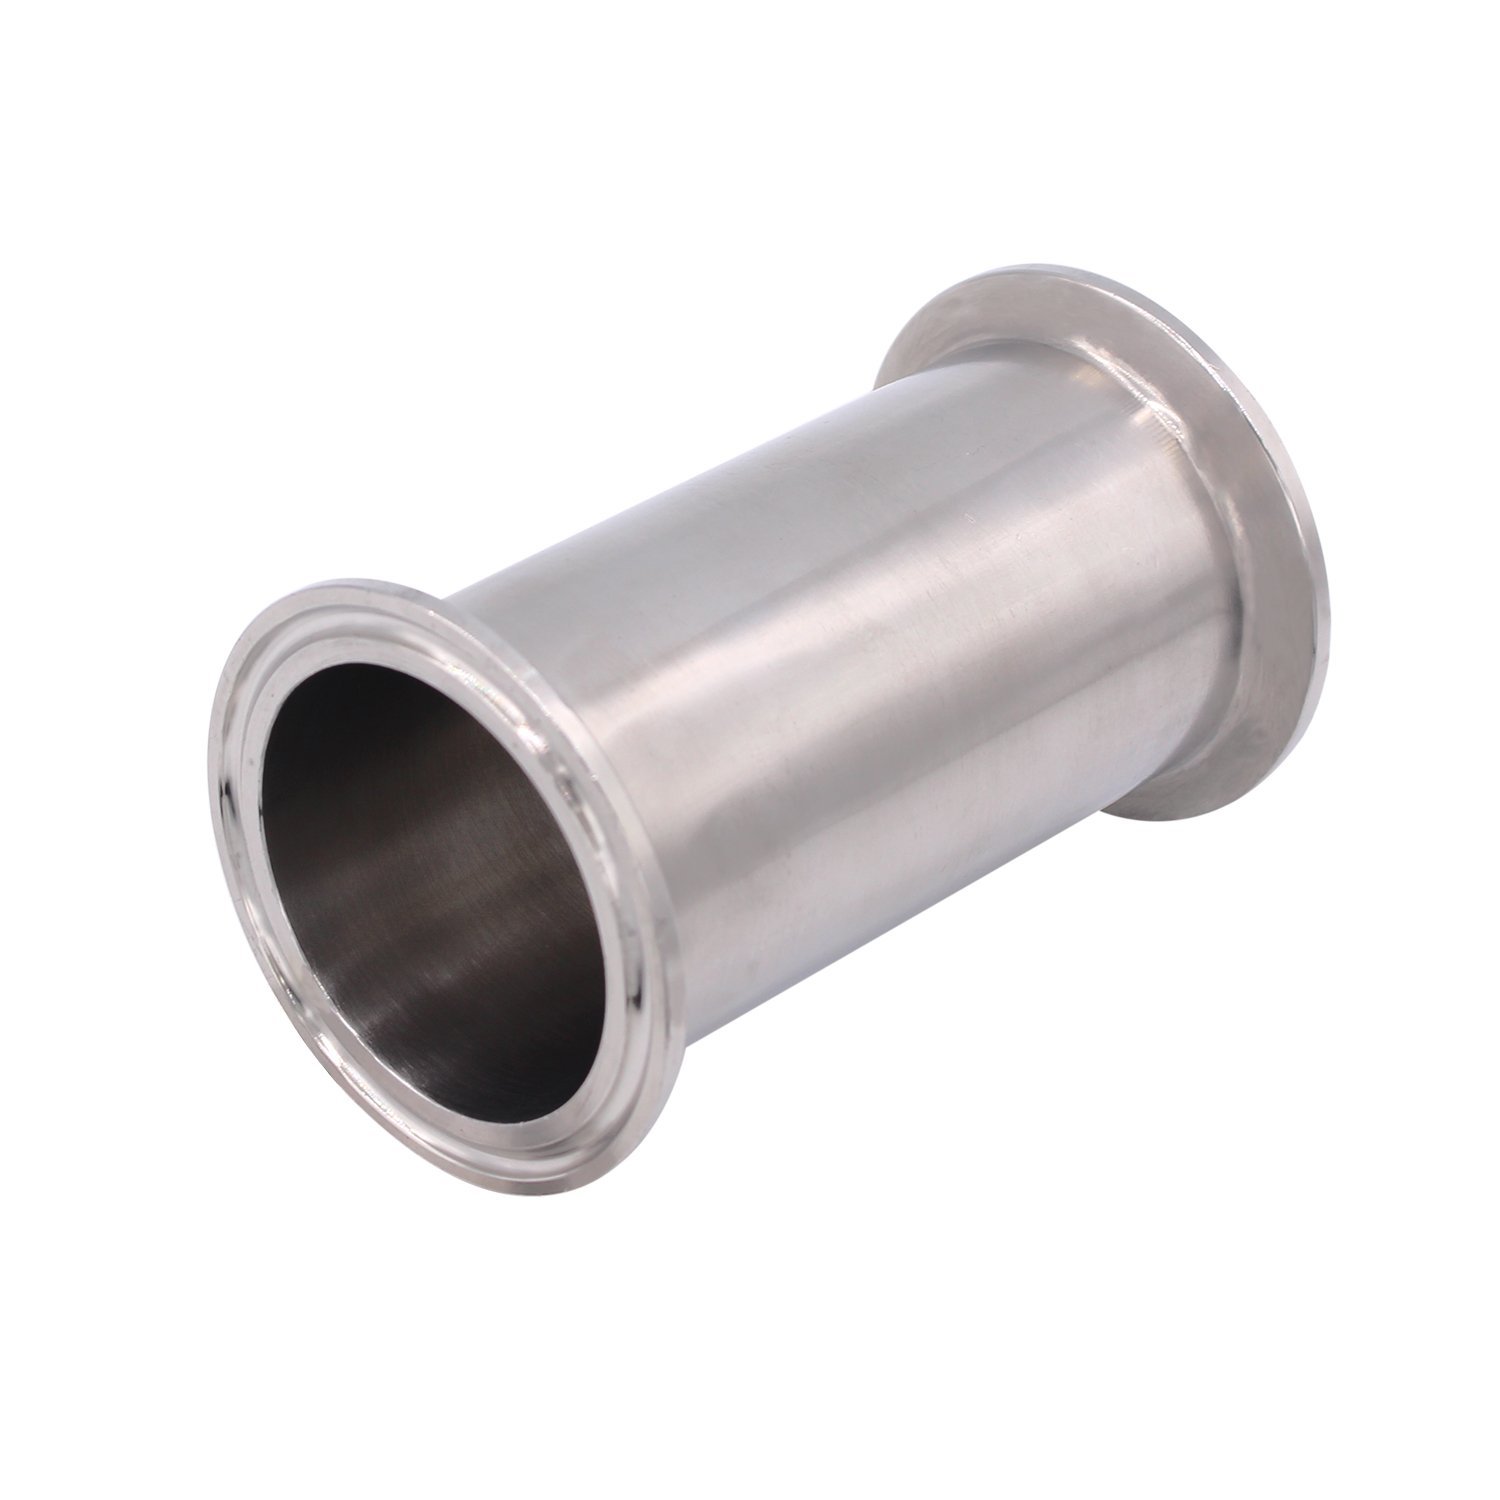 Dernord Sanitary Spool Tube with Clamp Ends, Stainless Steel 304 Seamless Round Tubing with 1.5 inch Tri Clamp 50.5MM Ferrule Flange (Tube Length: 18 inch / 458MM)